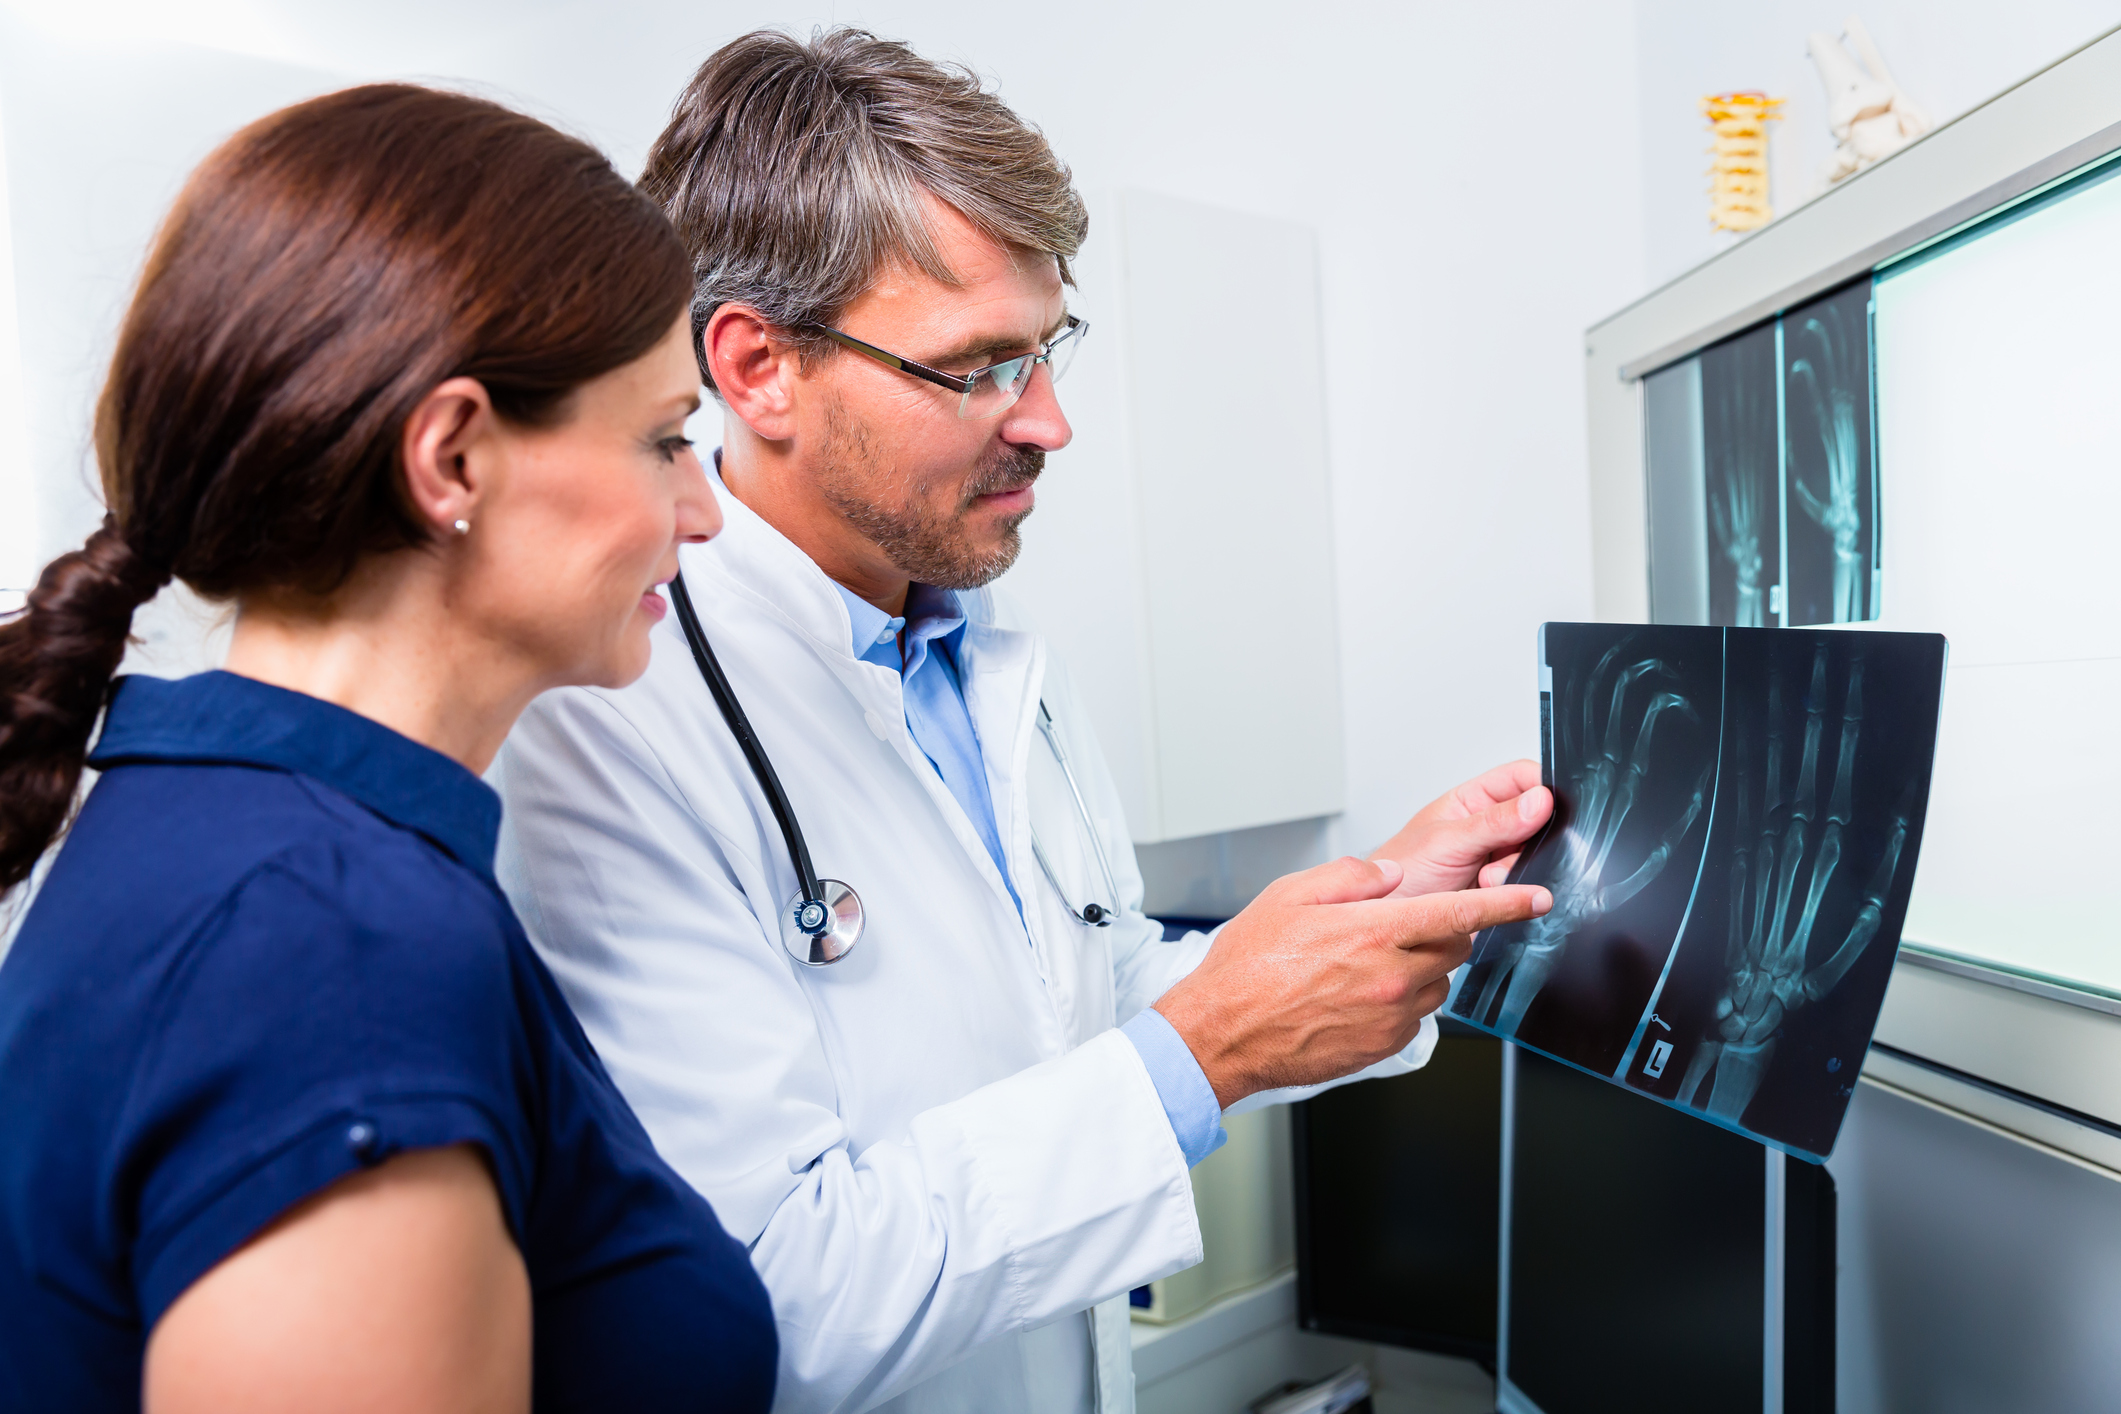 An orthopedist is what kind of doctor treats what diseases. Special features 24